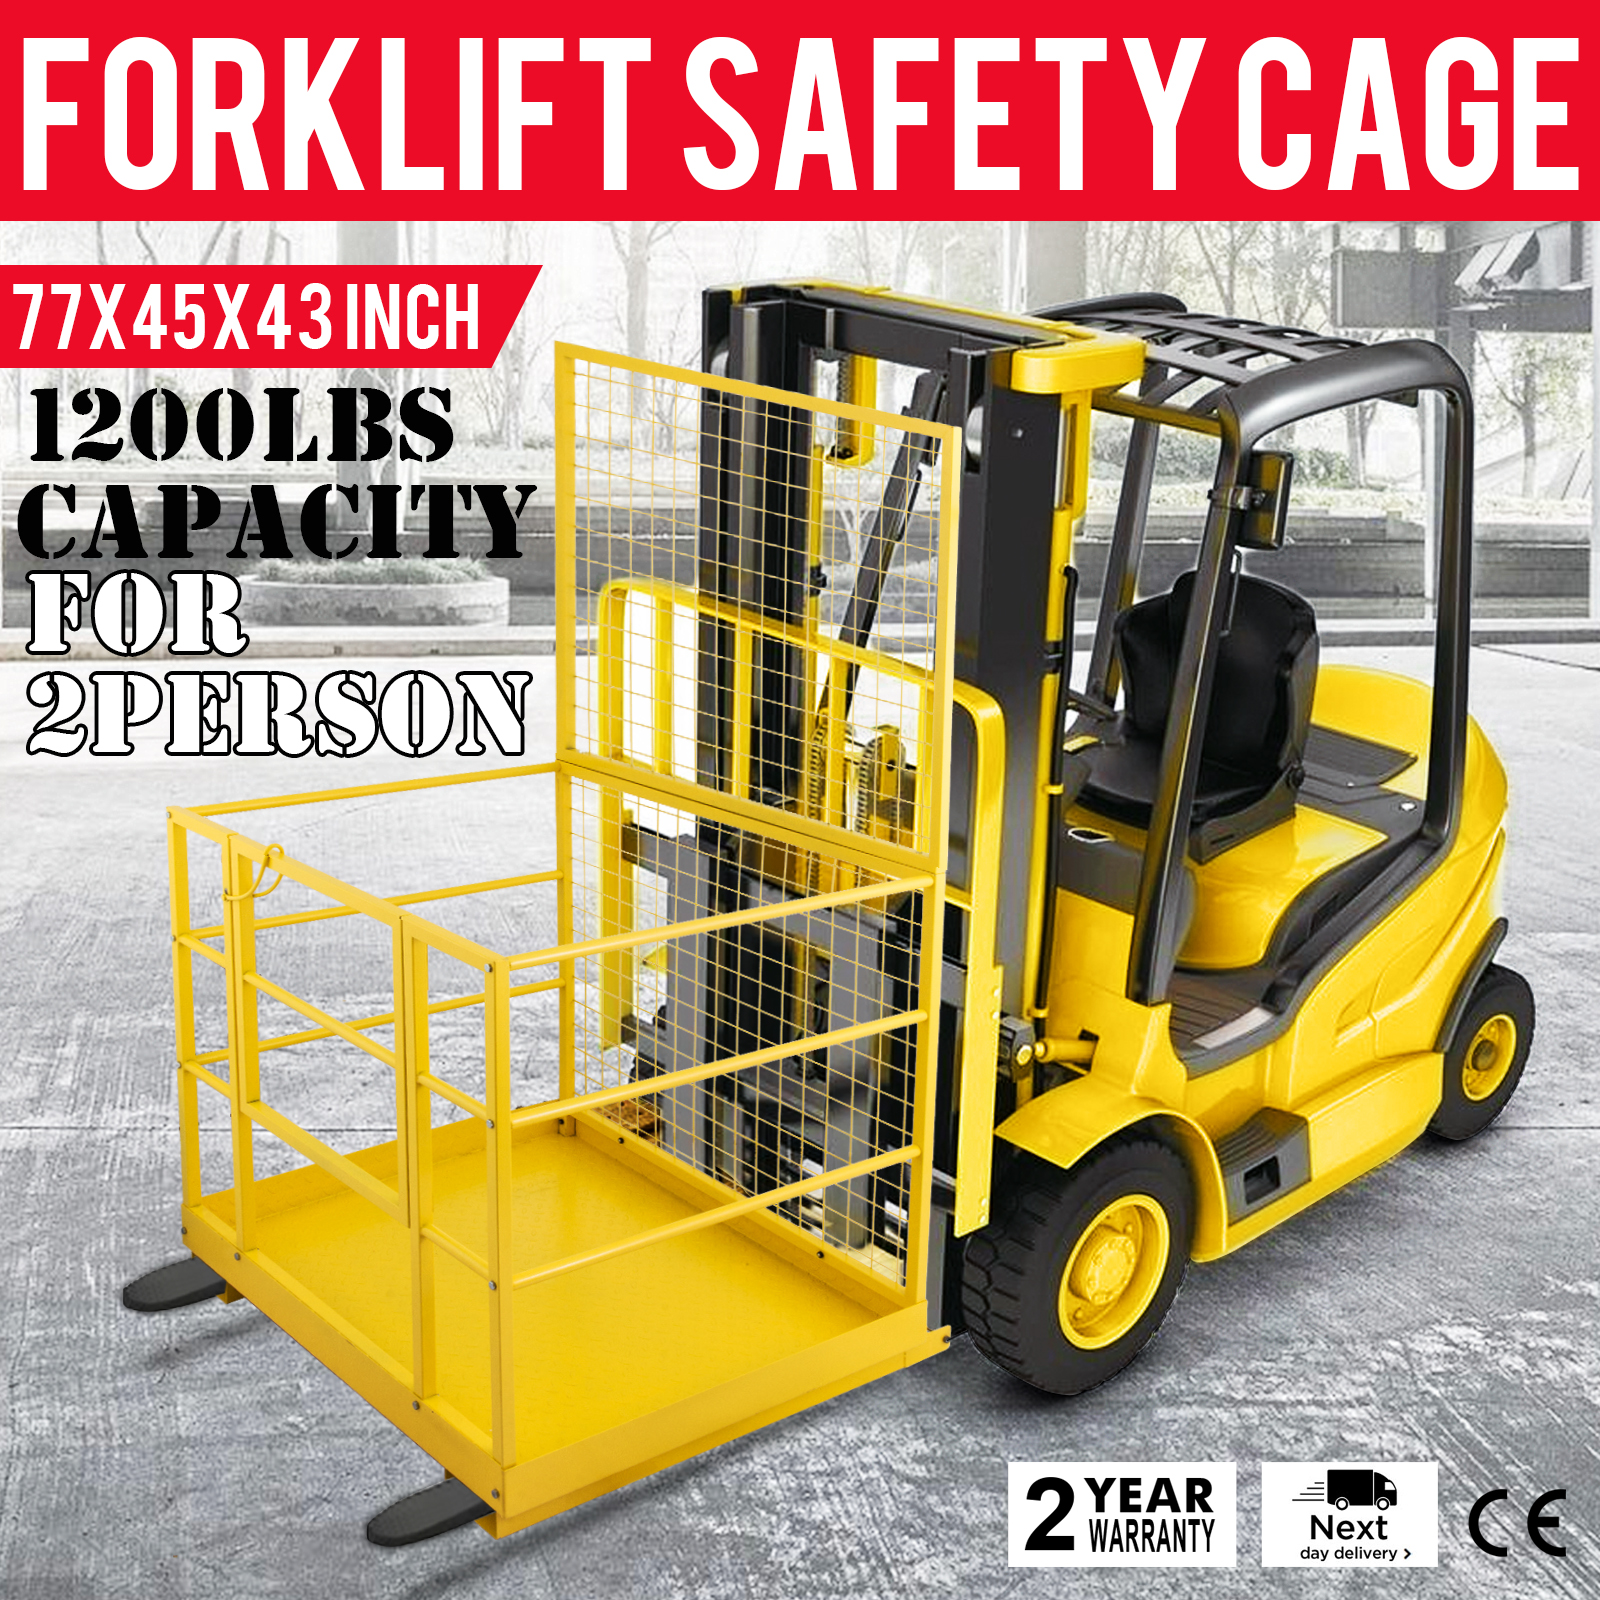 Forklift Safety Cage Work Platform Lift Basket Aerial ...